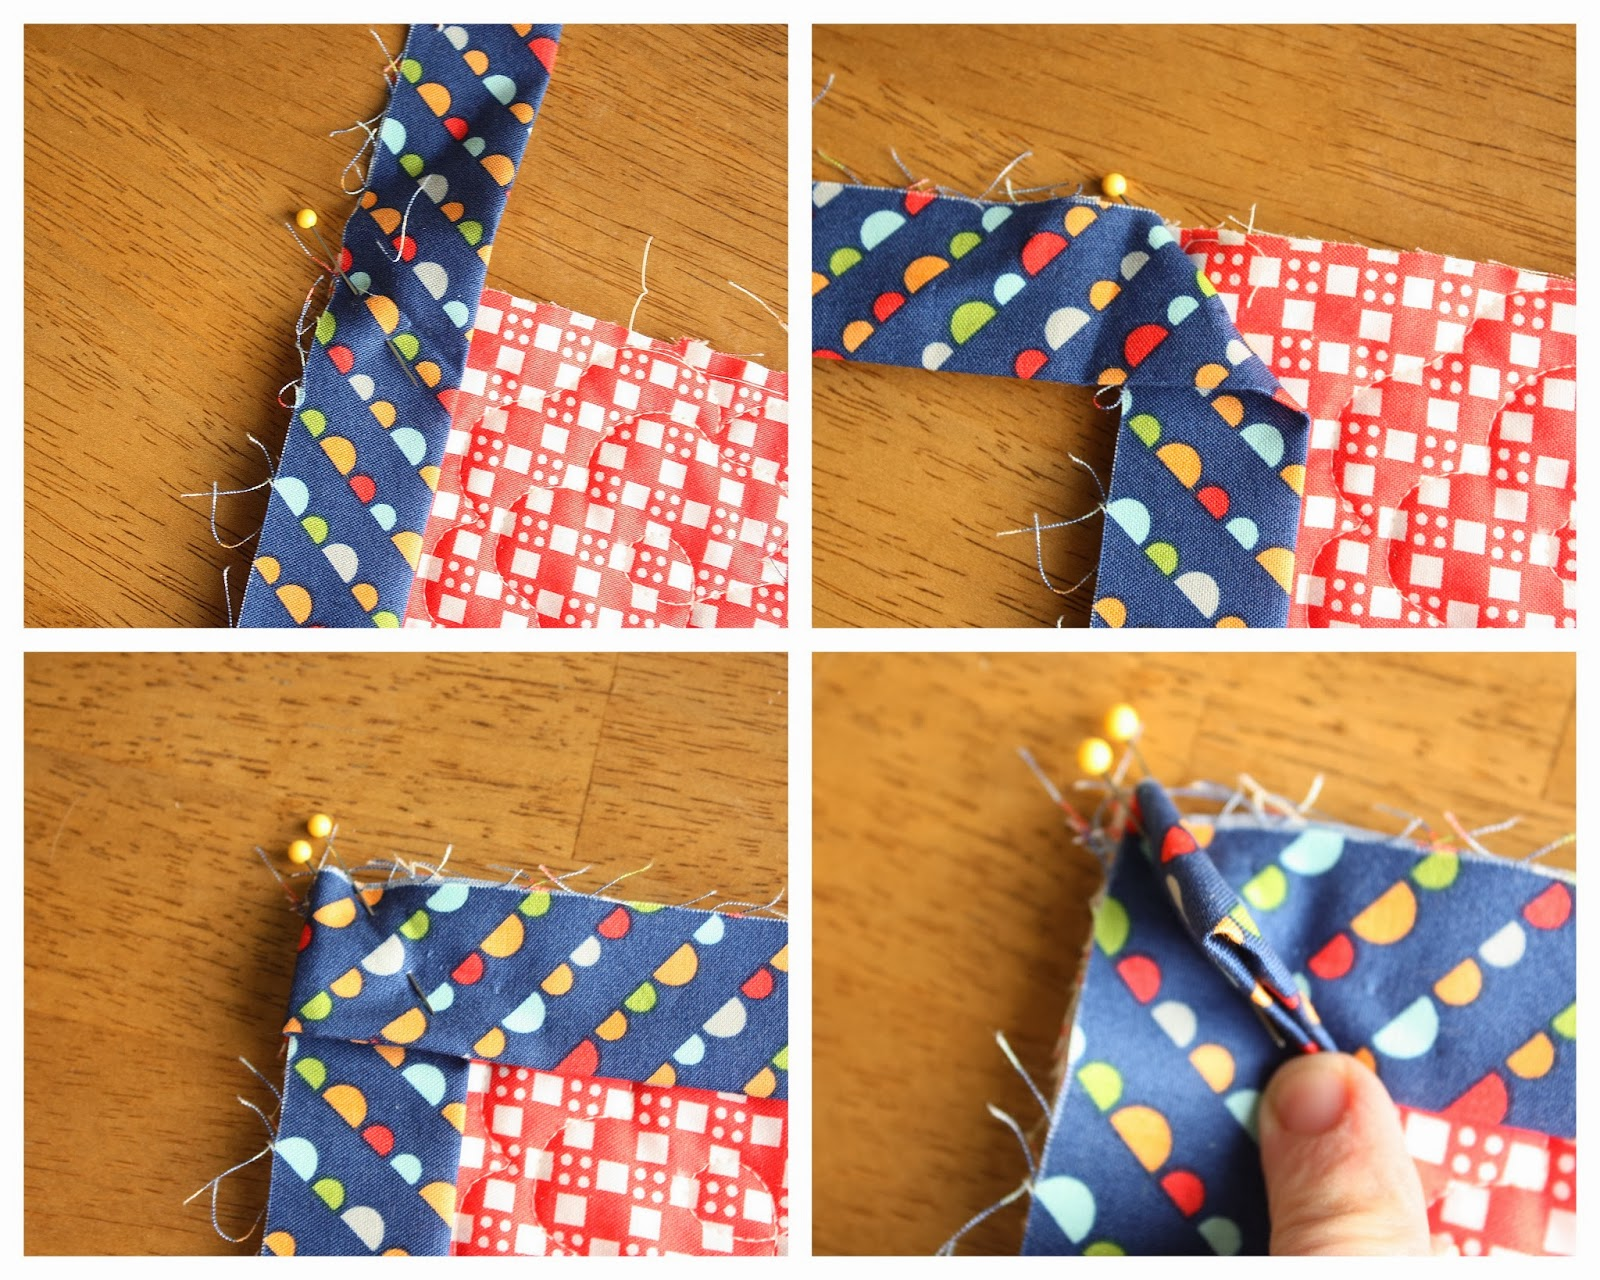 how to sew binding on a quilt with a machine